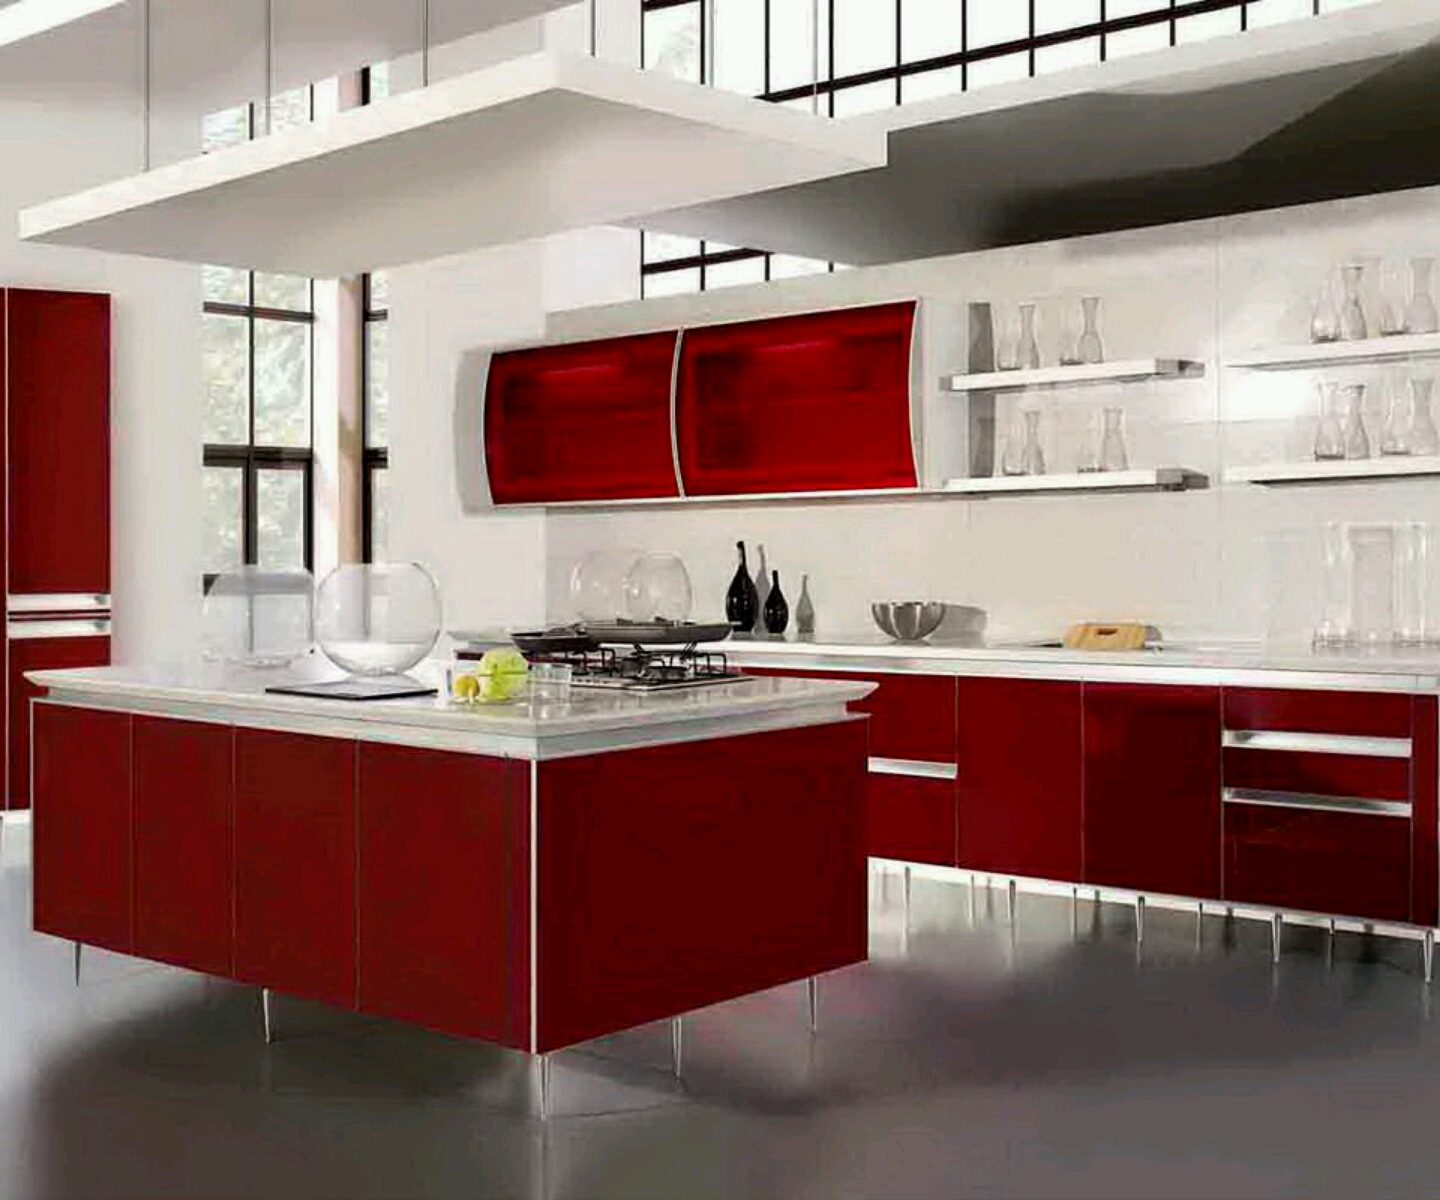 New home designs latest.: Ultra modern kitchen designs ideas. on Modern Kitchen Design  id=96362